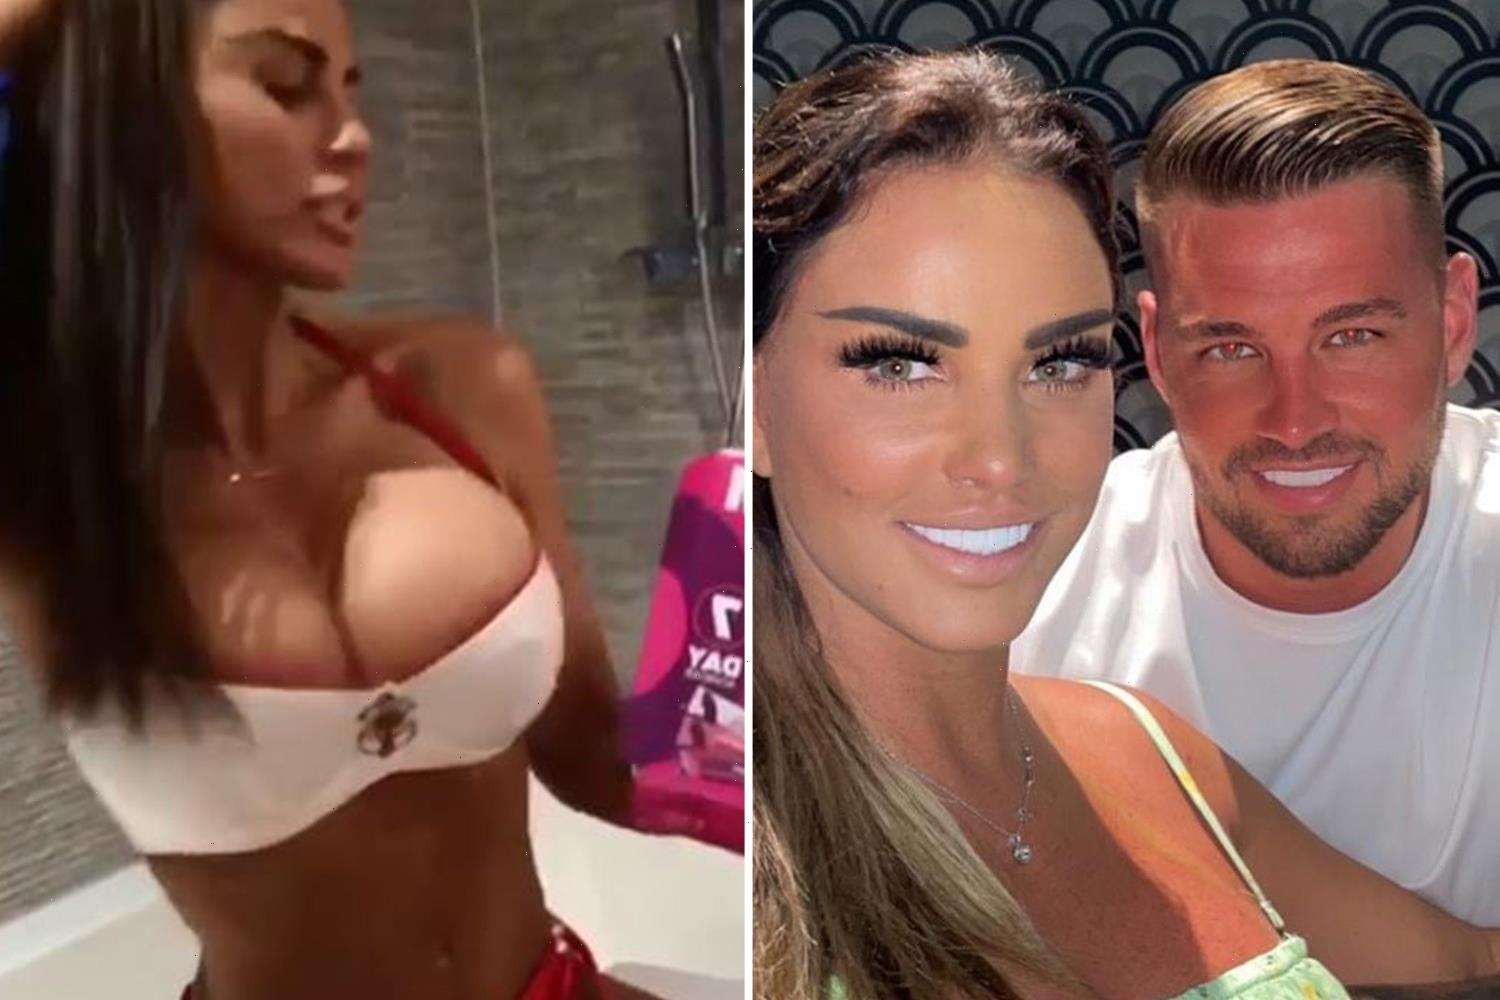 Katie Price's fiancé Carl Woods 'bans her from going topless and tells her to dress her age' on holiday